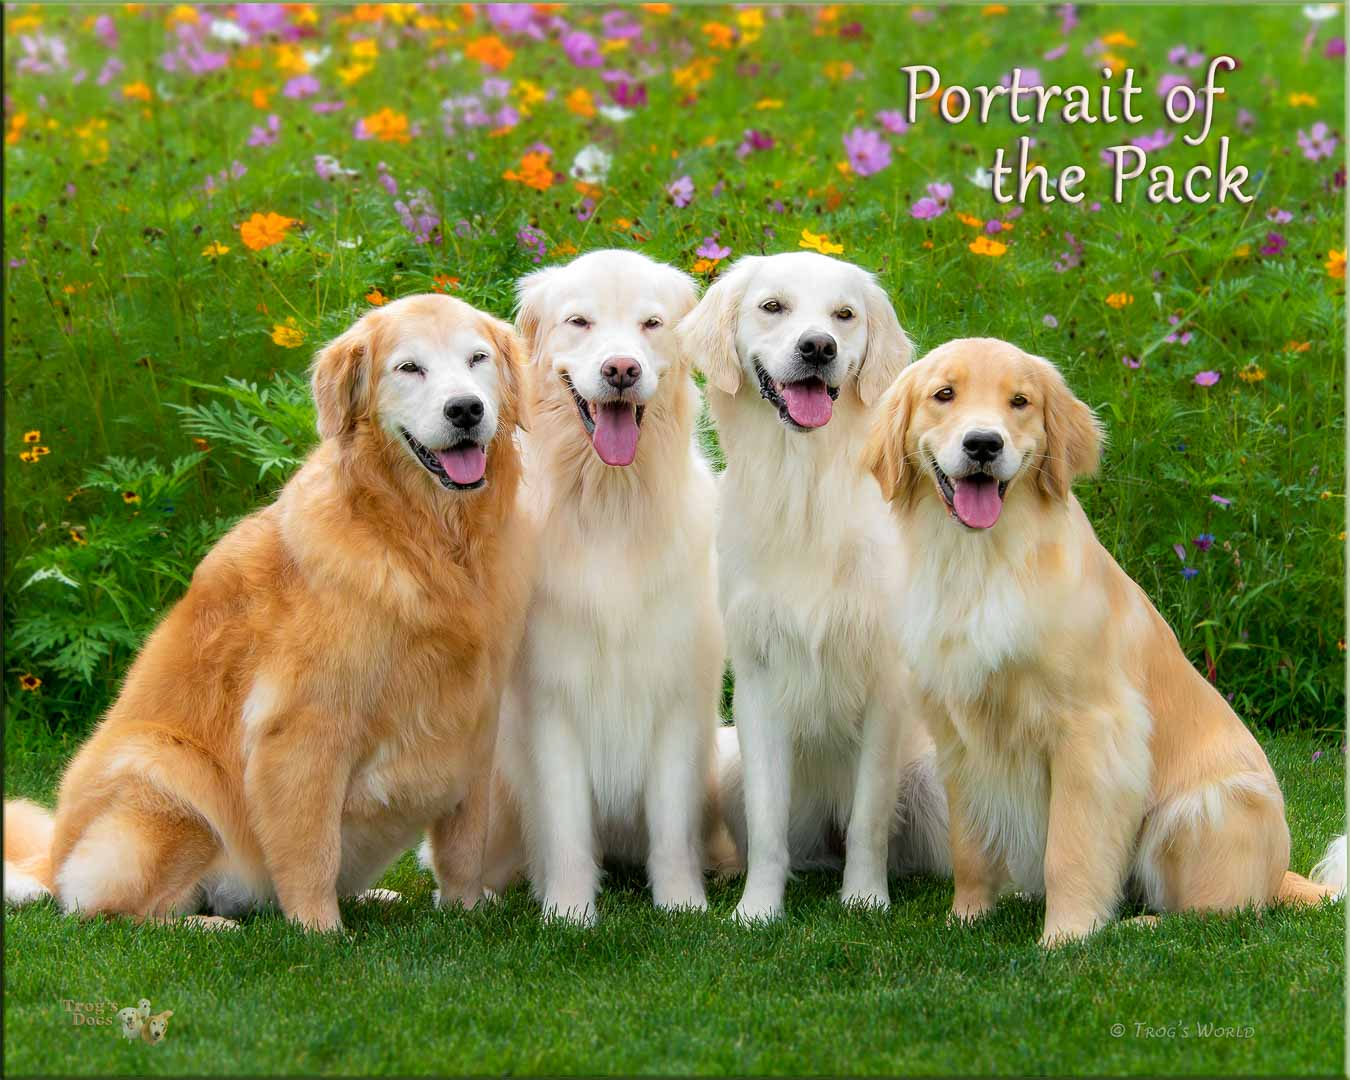 Four Golden Retrievers pose for a picture